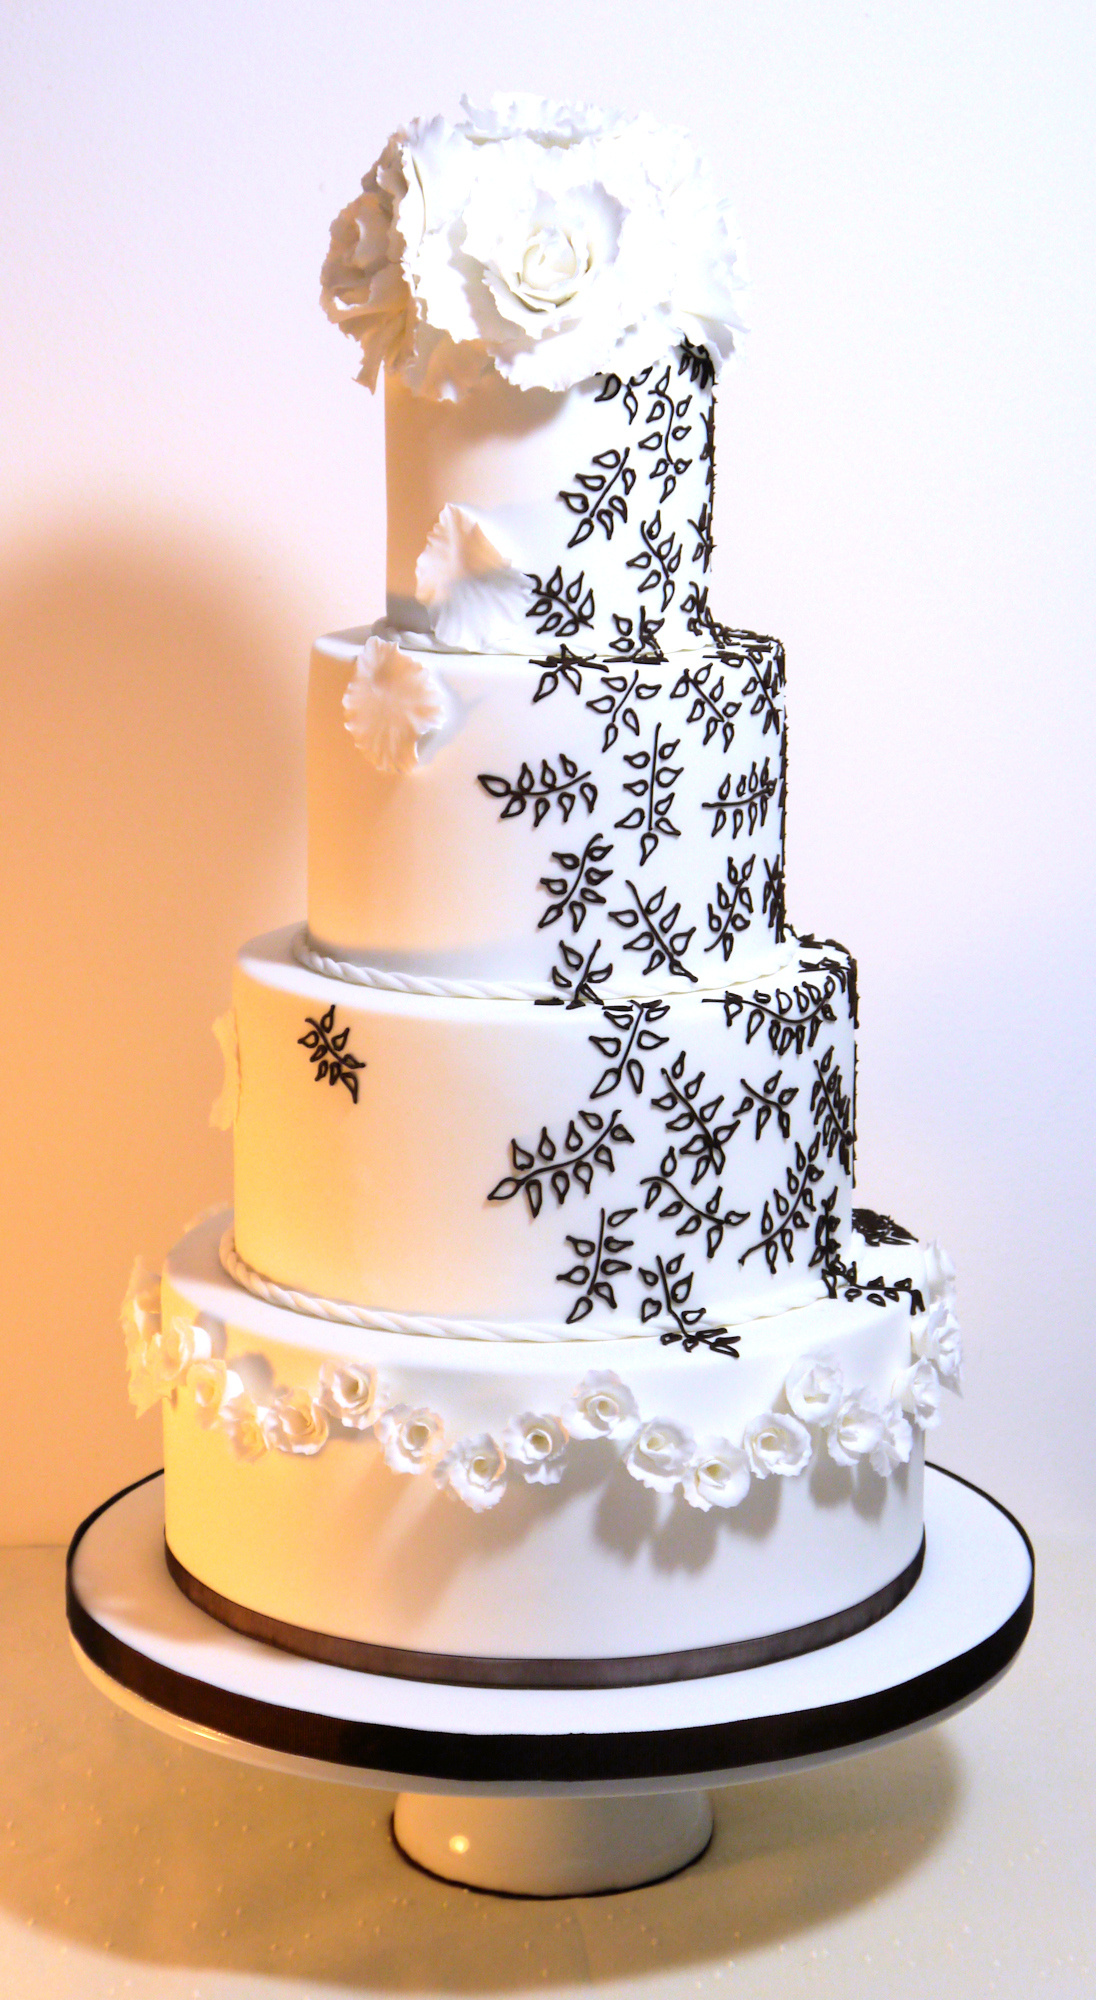 New Luxury Wedding Cake Collection from Cakes By Beth